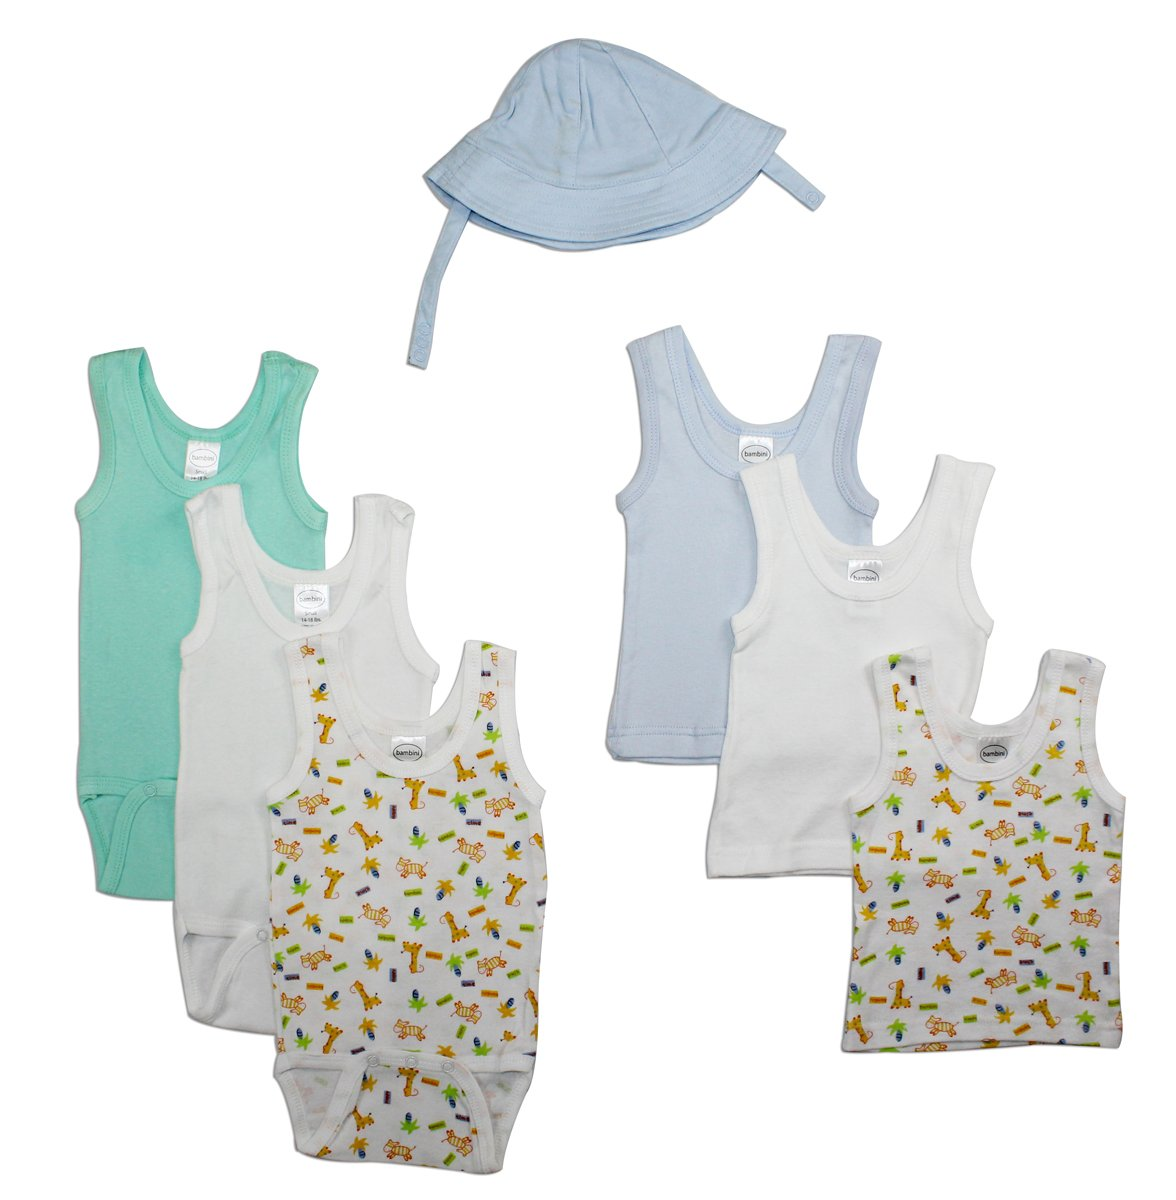 Bambini Boys' Summer 7 Piece Layette Set - Baby World Inc